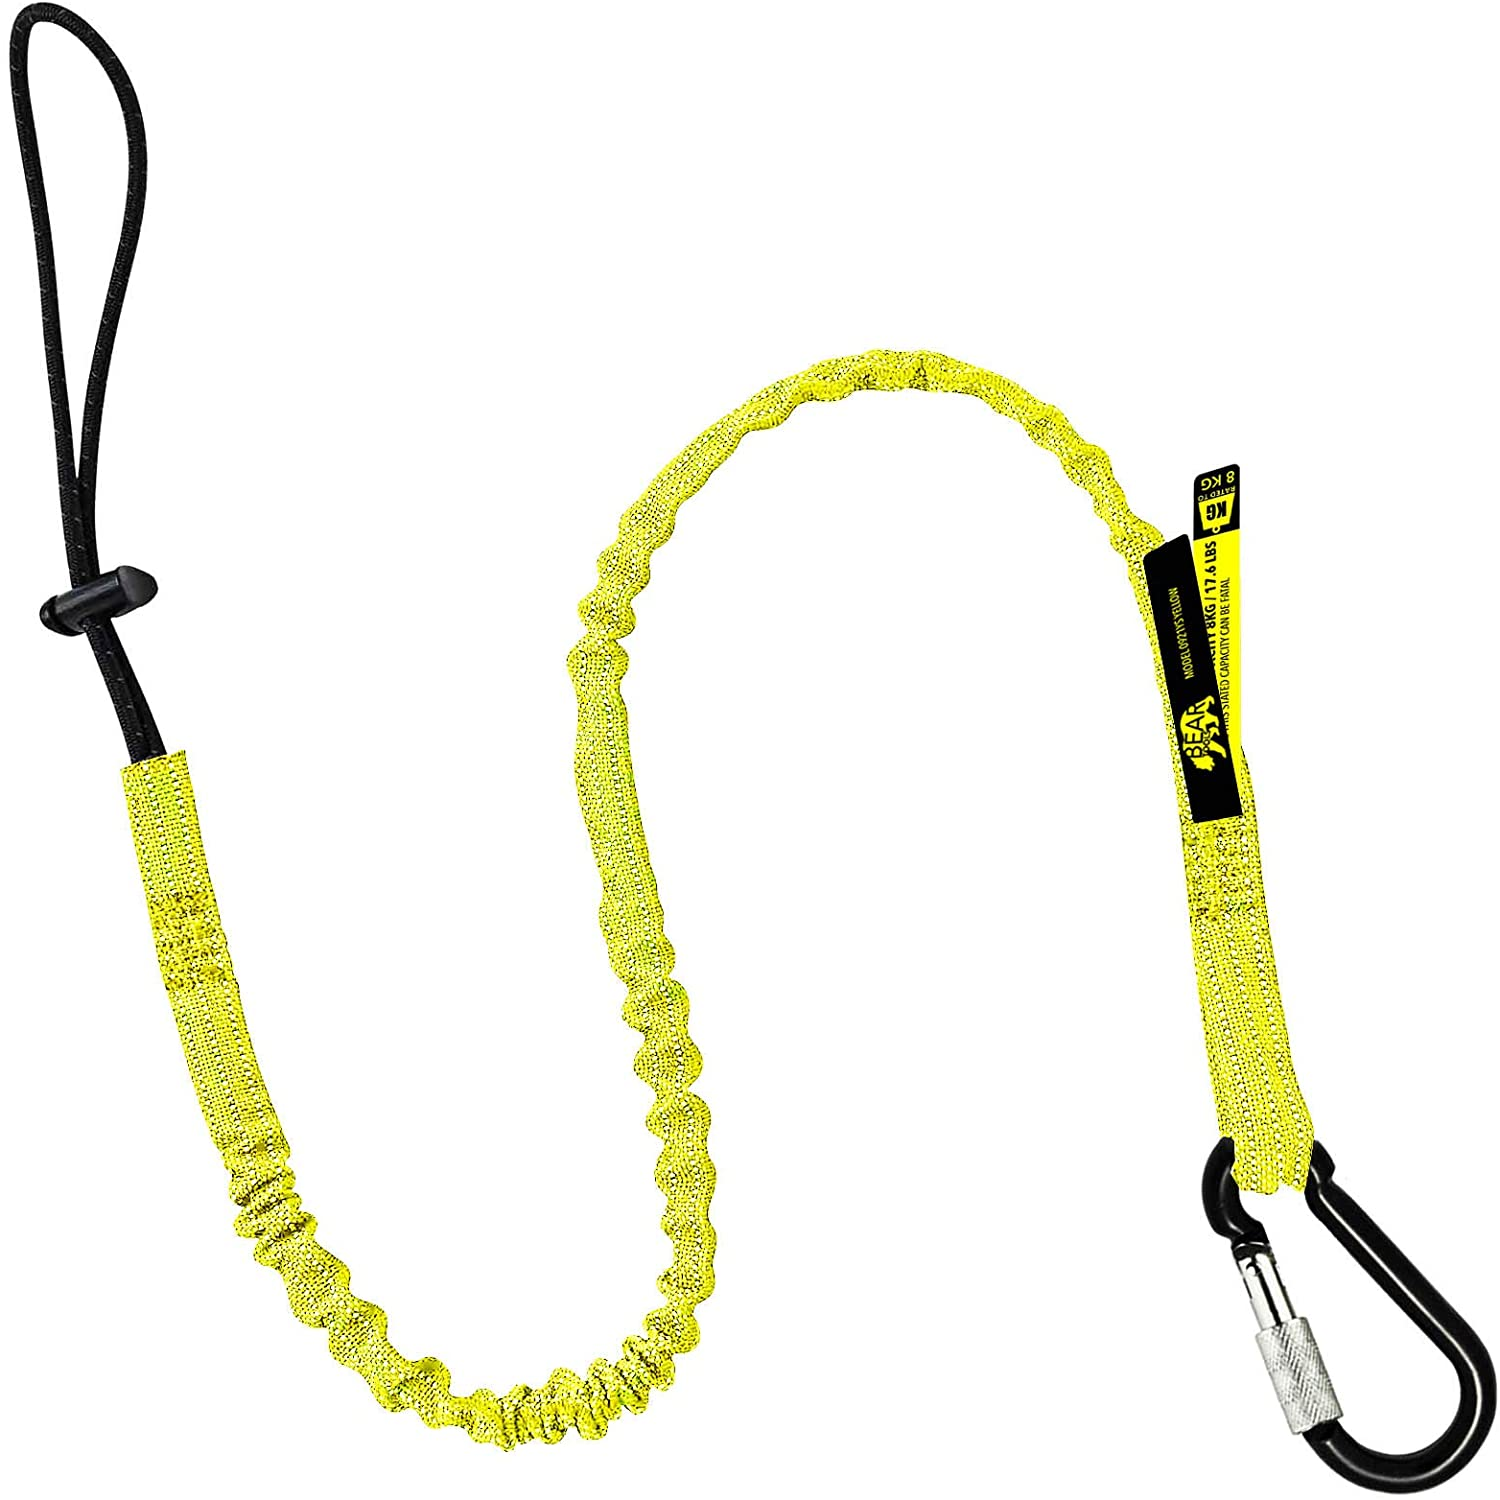 8 x Bungee Tether Tool Lanyard with Snap Hook to Loop 85-135mm 10Kg Rated